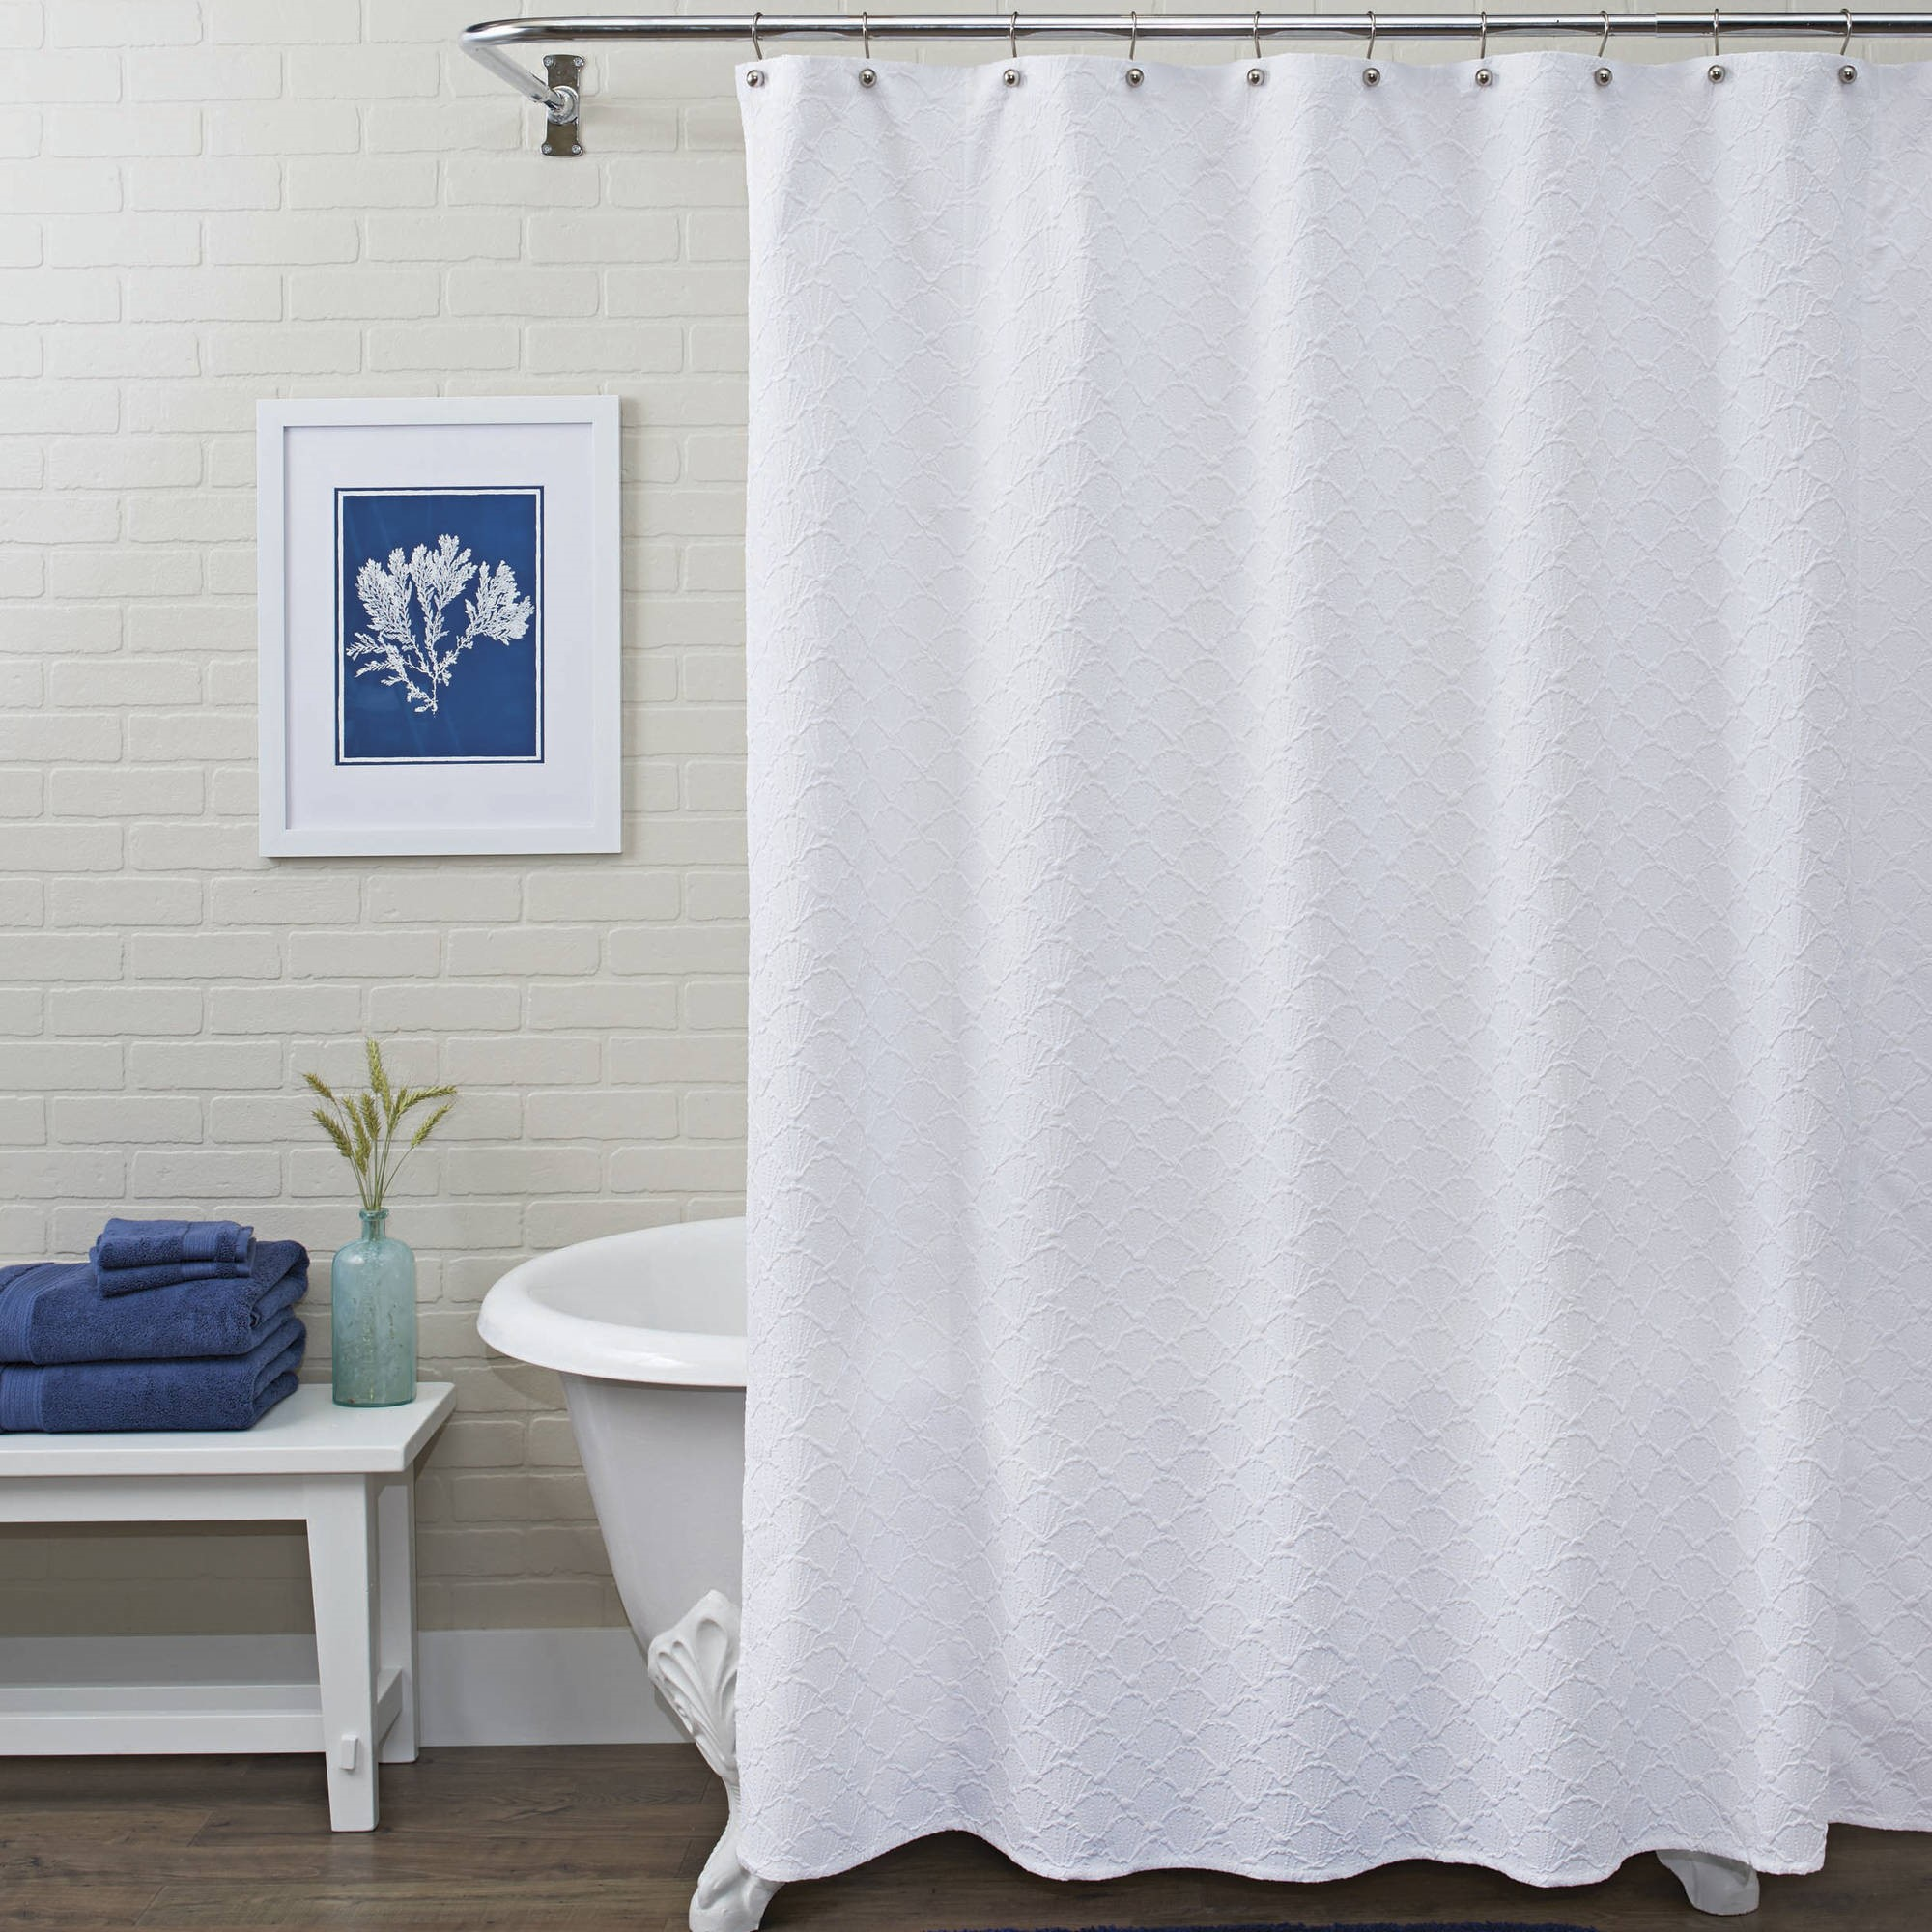 Better Homes and Gardens Shower Curtain, White Shells by CHF Industries Inc